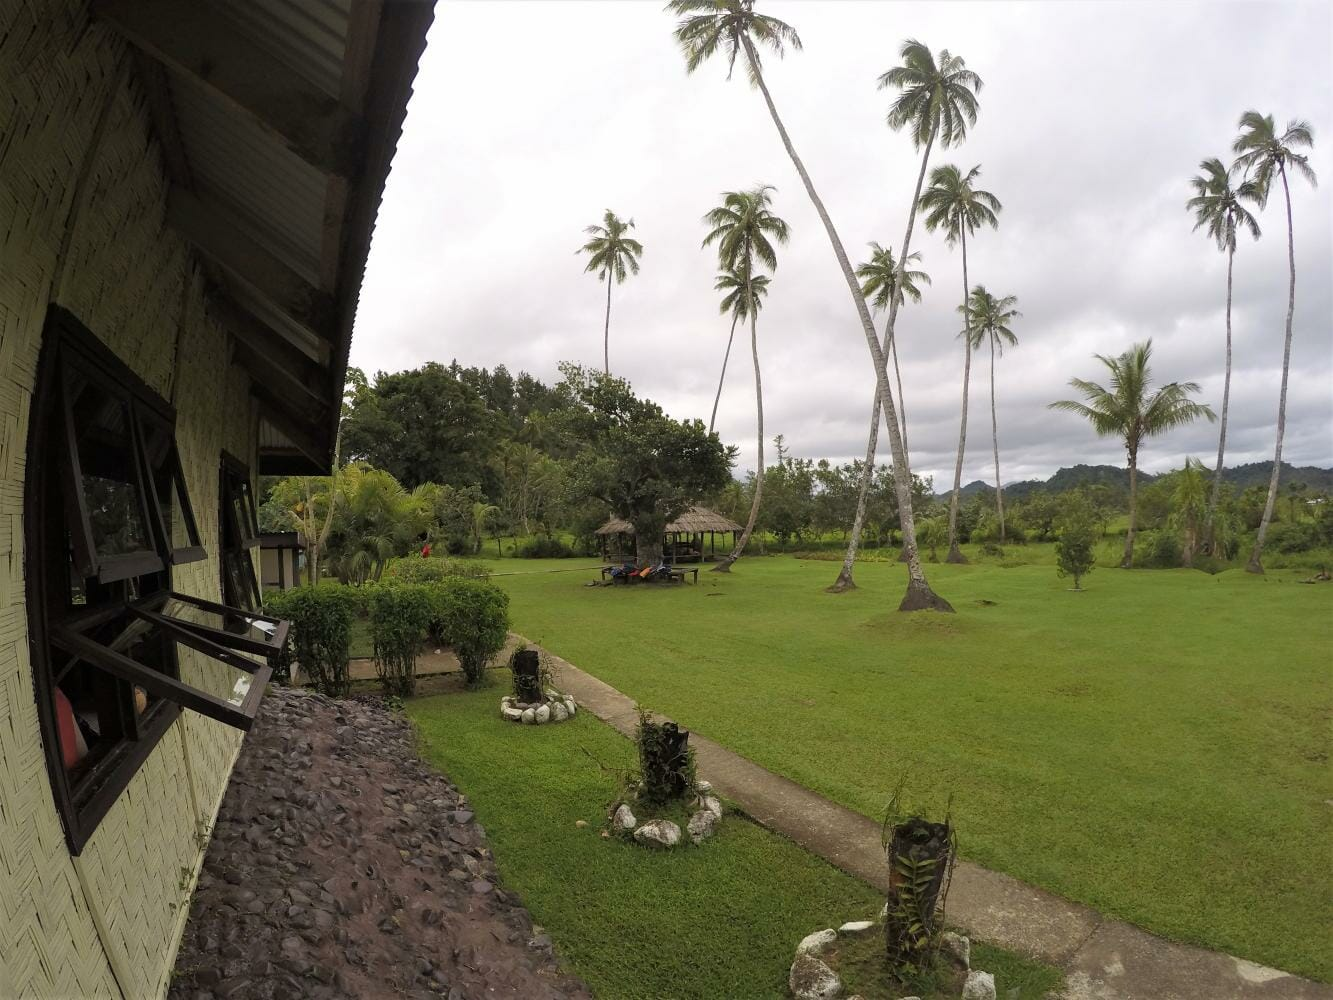 View of the Fijian village on tour with the Jewel of Fiji